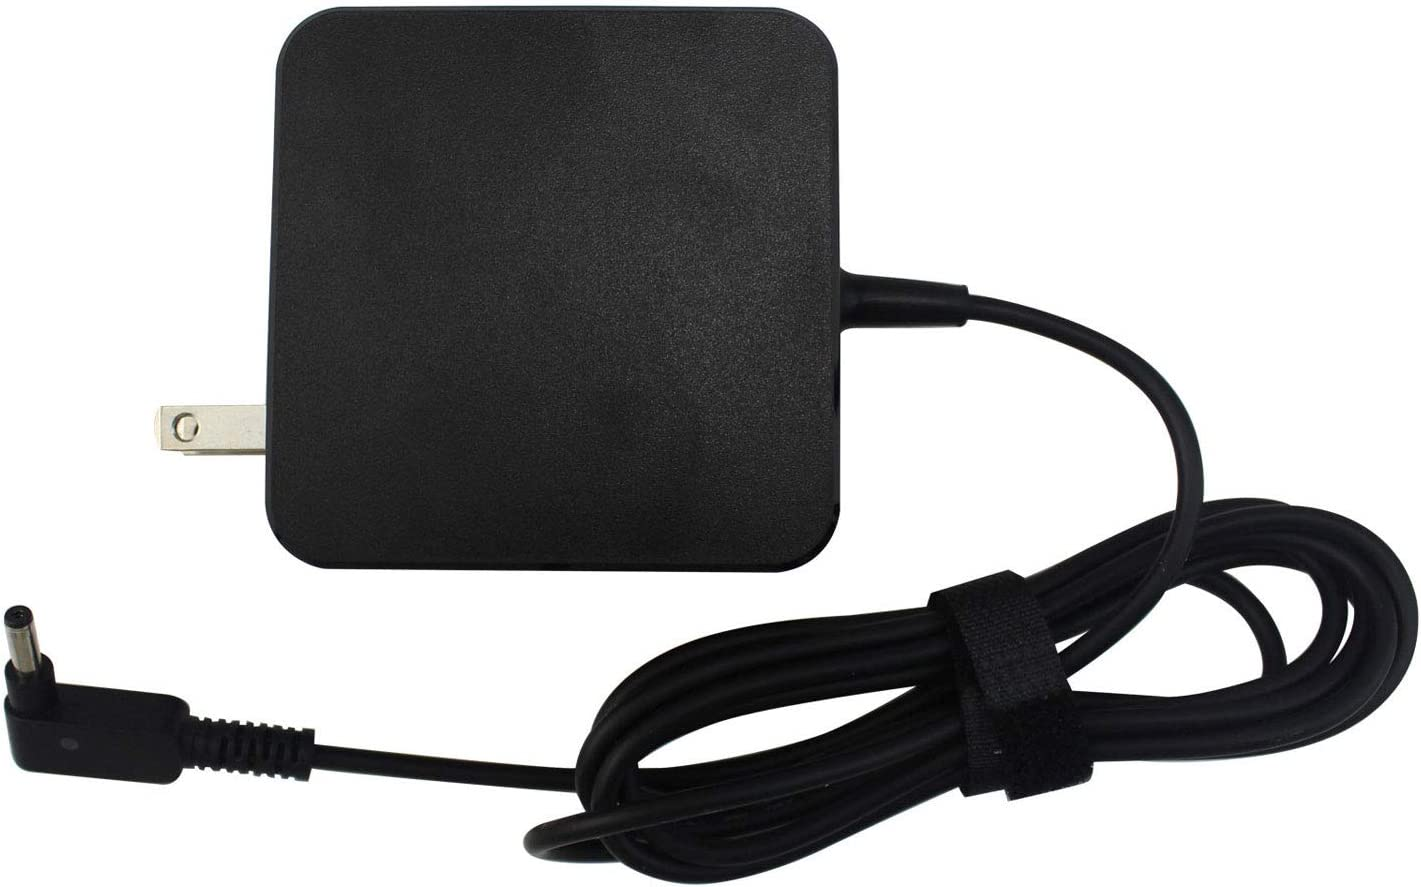 LXHY 19V 2.37A AC Adapter Charger Compatible with ASUS X540 X540LA X540SA Zenbook UX21A UX31A UX32A UX303 UX305 Taichi 21 31 Transmer Book Flip T300LA TP300LA 45W ADP-45AW A Power Cord Supply